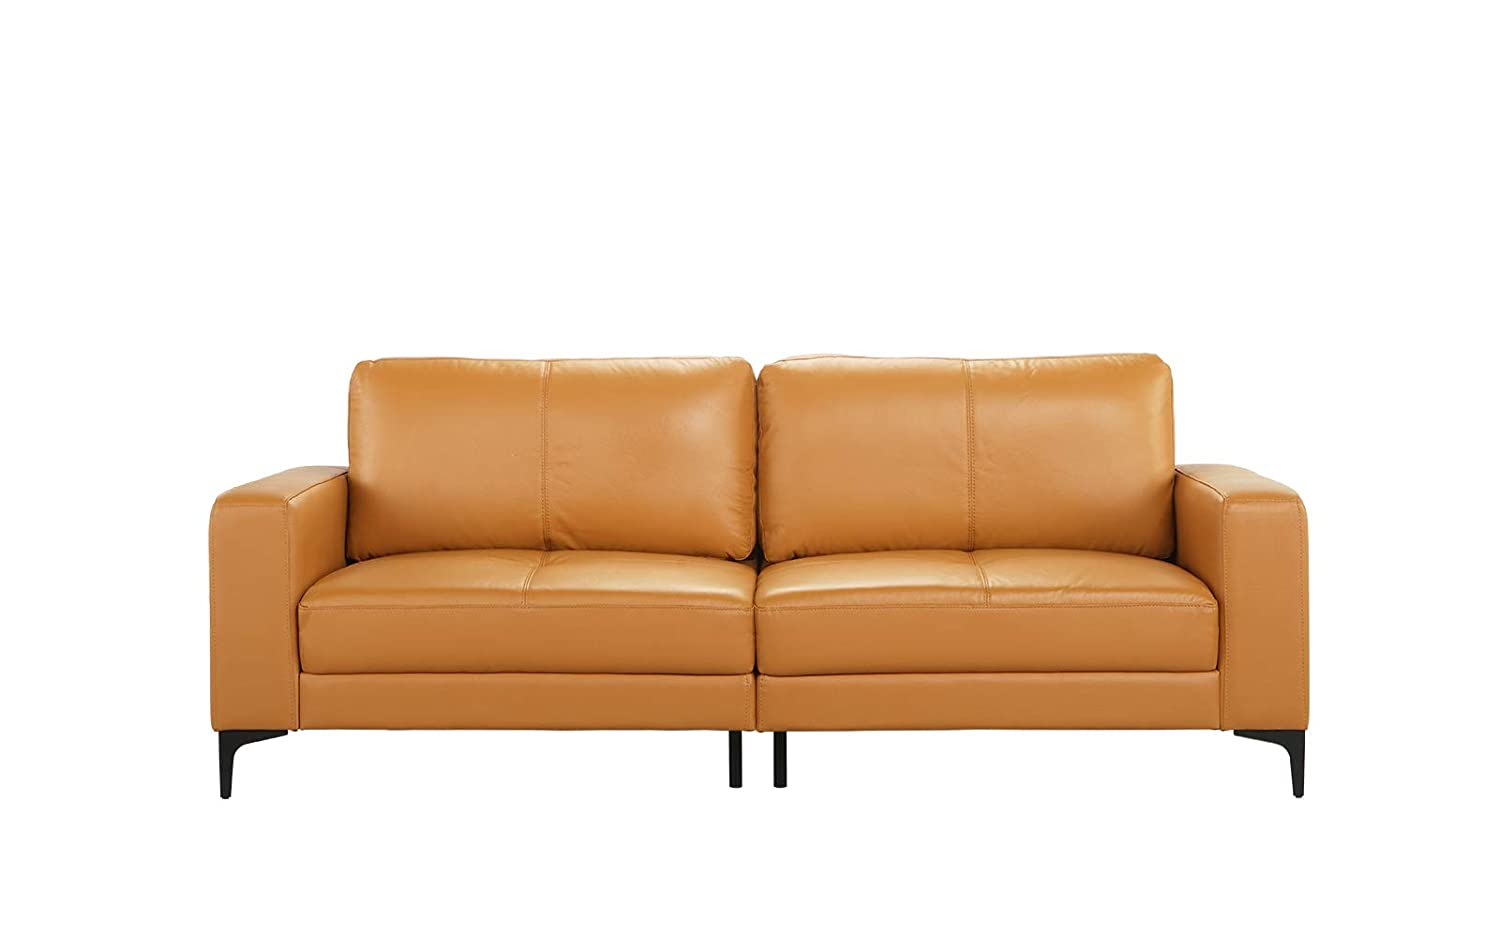 Amazon.com: Mid Century Modern Upholstered Leather Sofa ...